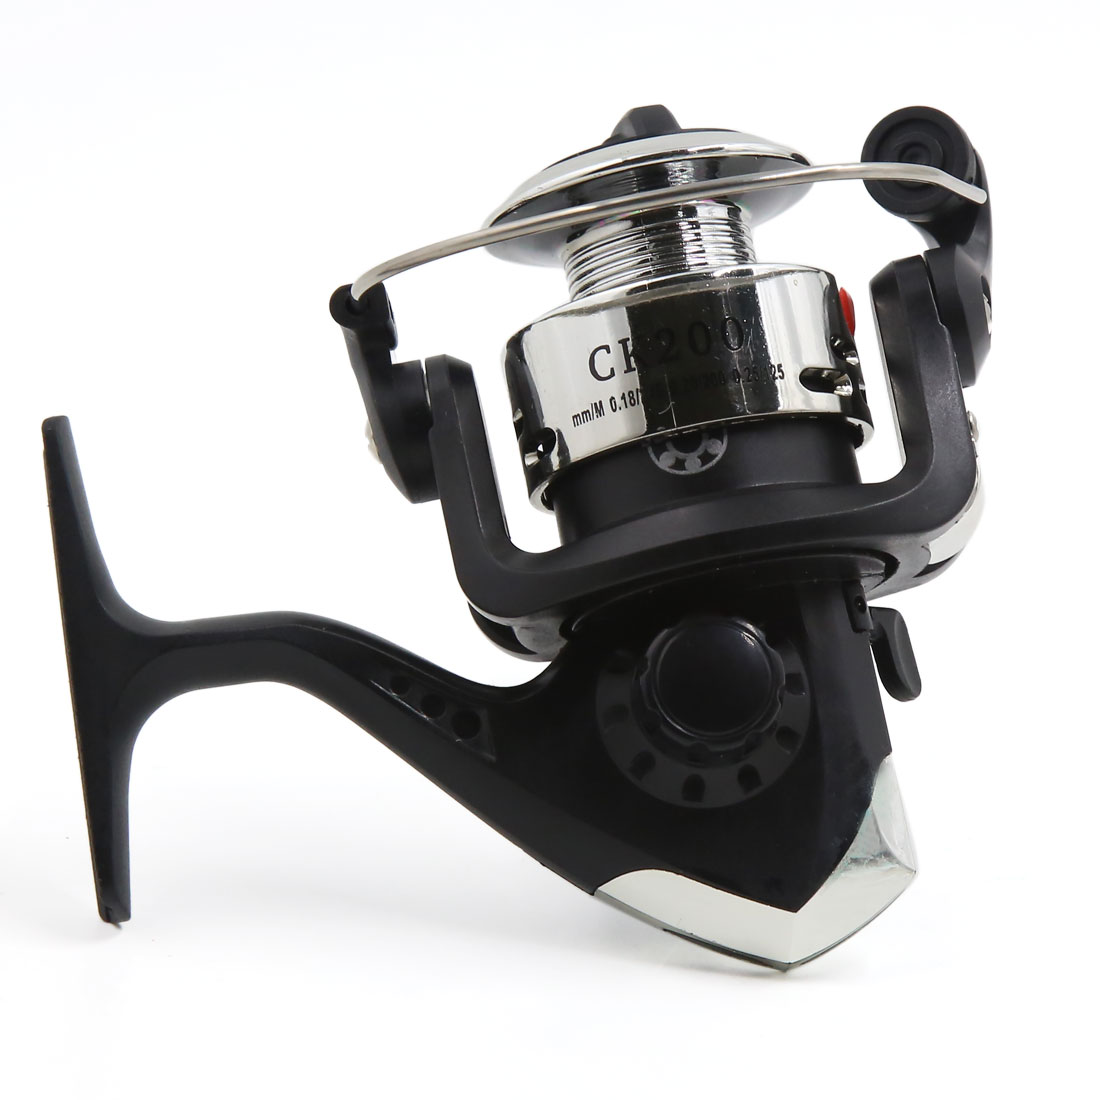 3BB Ball Bearing 5.1:1 Metal Interchangeable Fishing Reels Spinning Reel